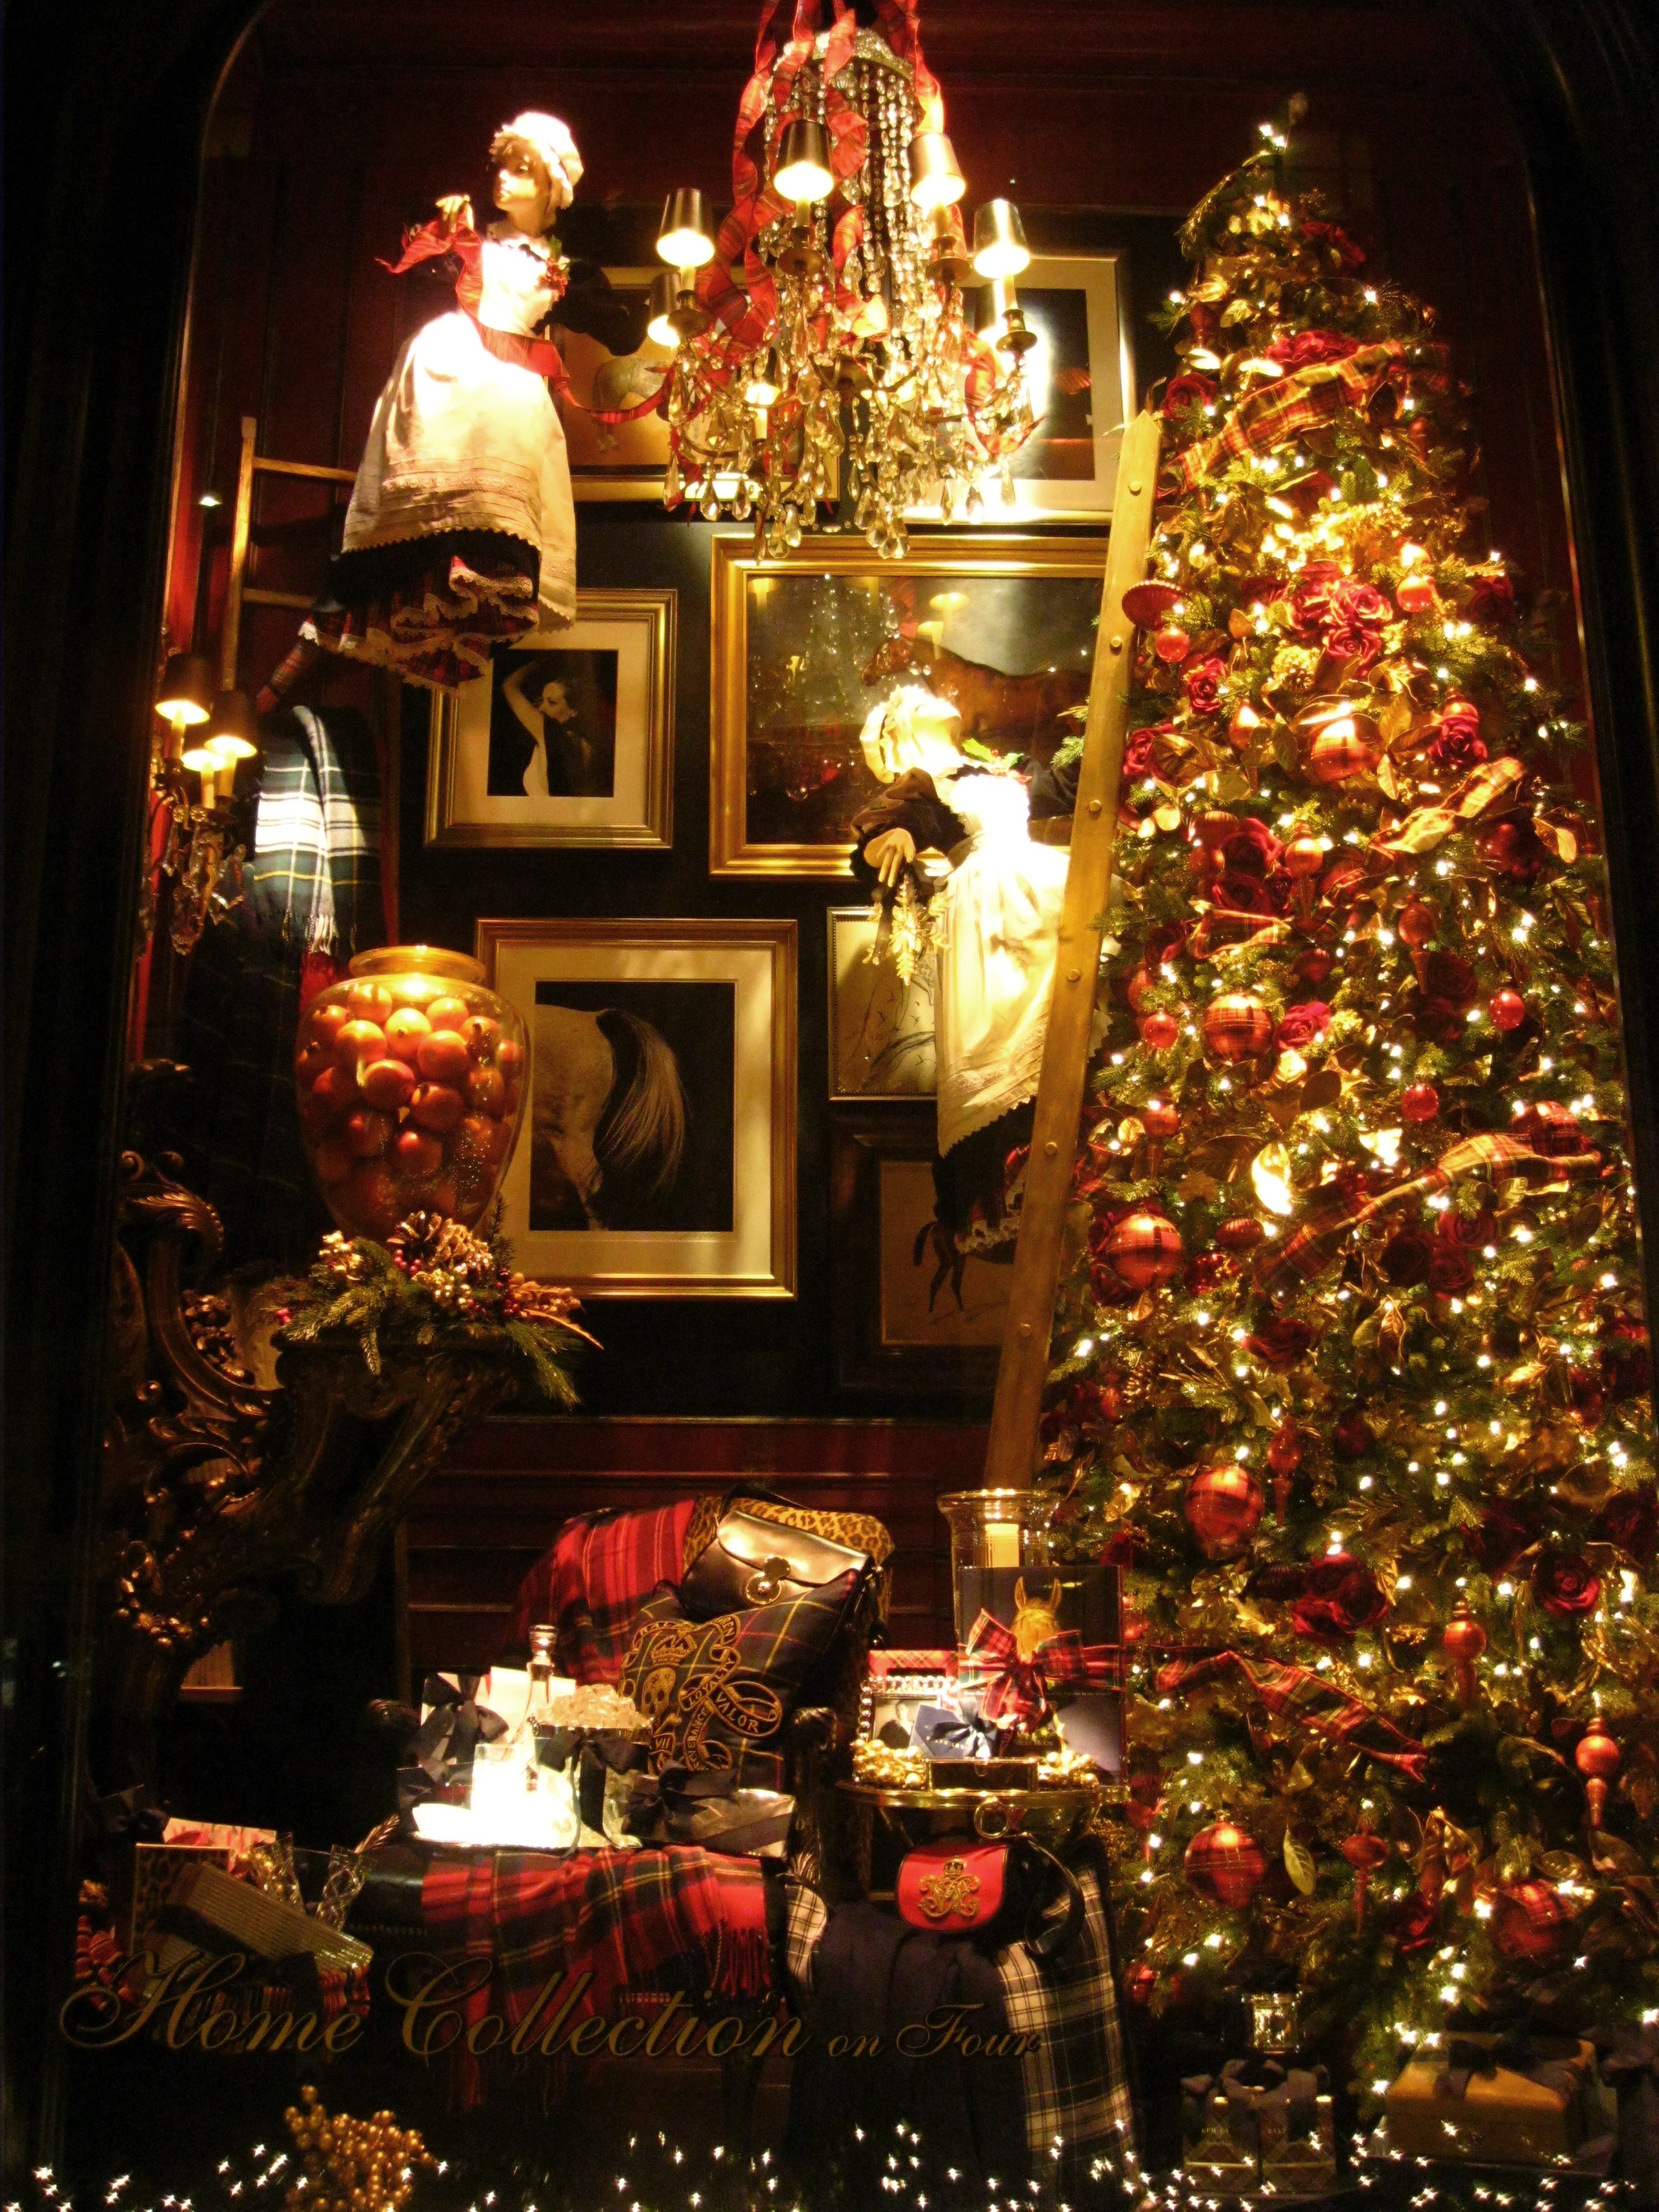 Ralph lauren ritournelle Latest christmas decorations